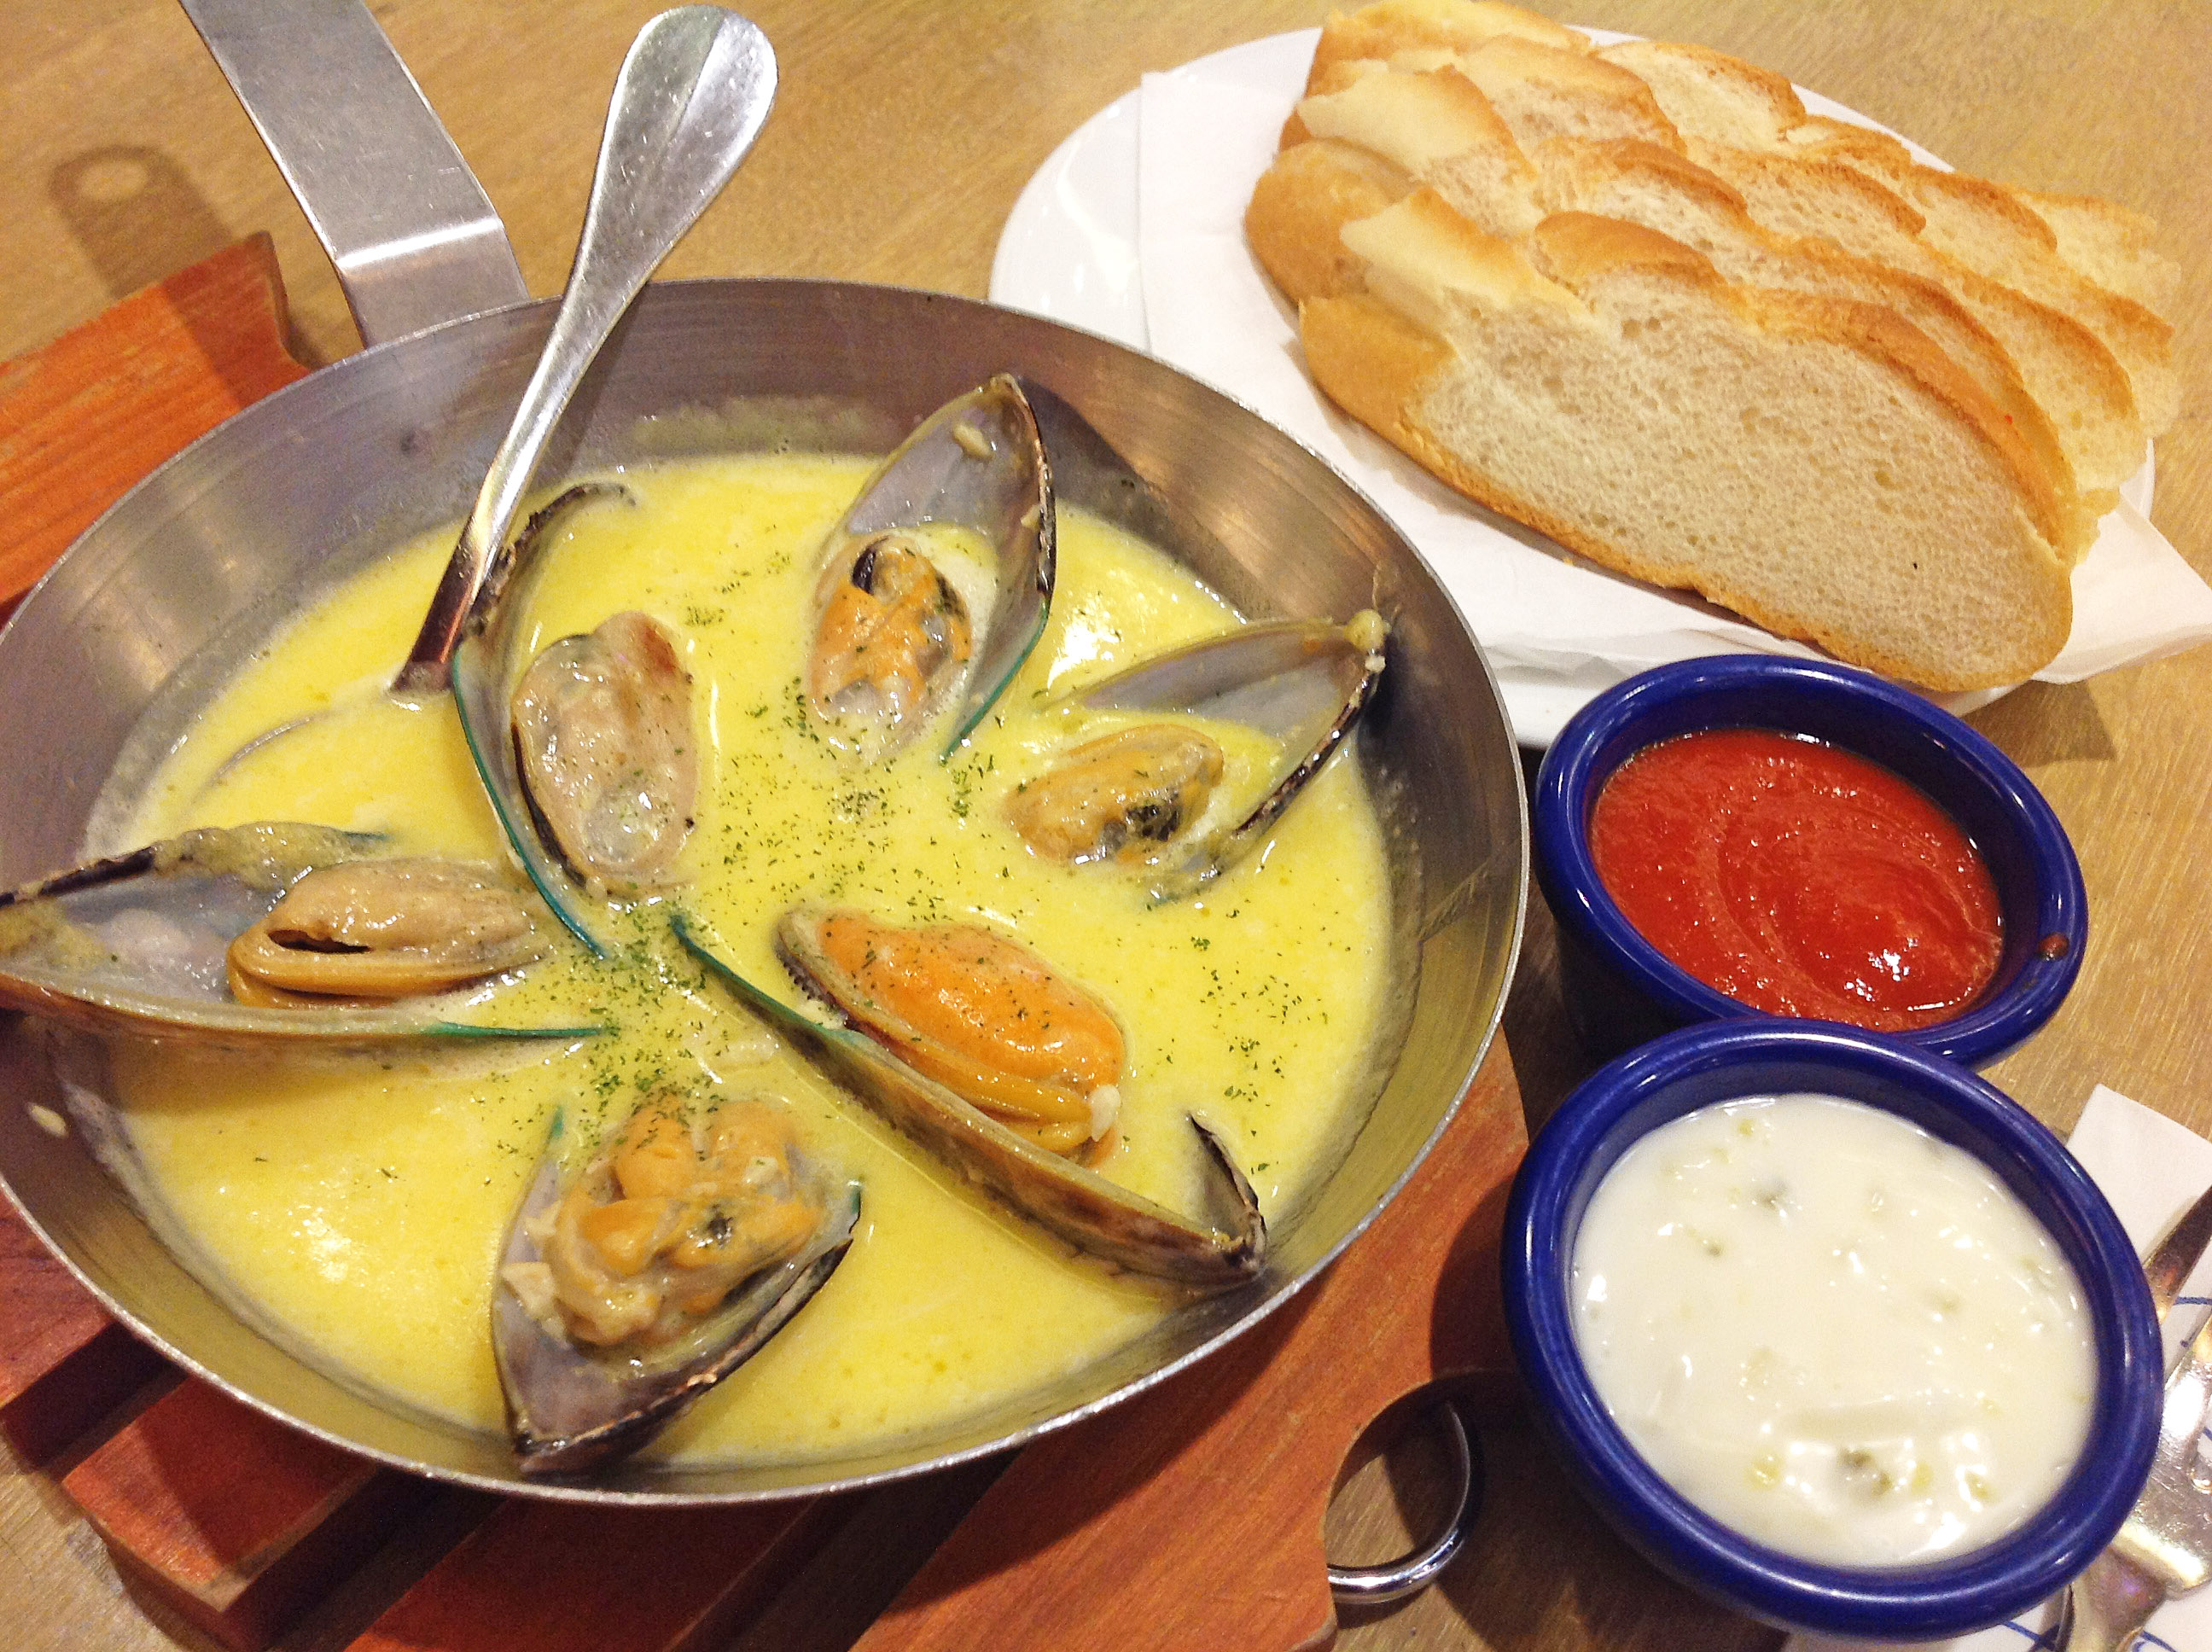 Recommended Restaurant: Seafood in a pan